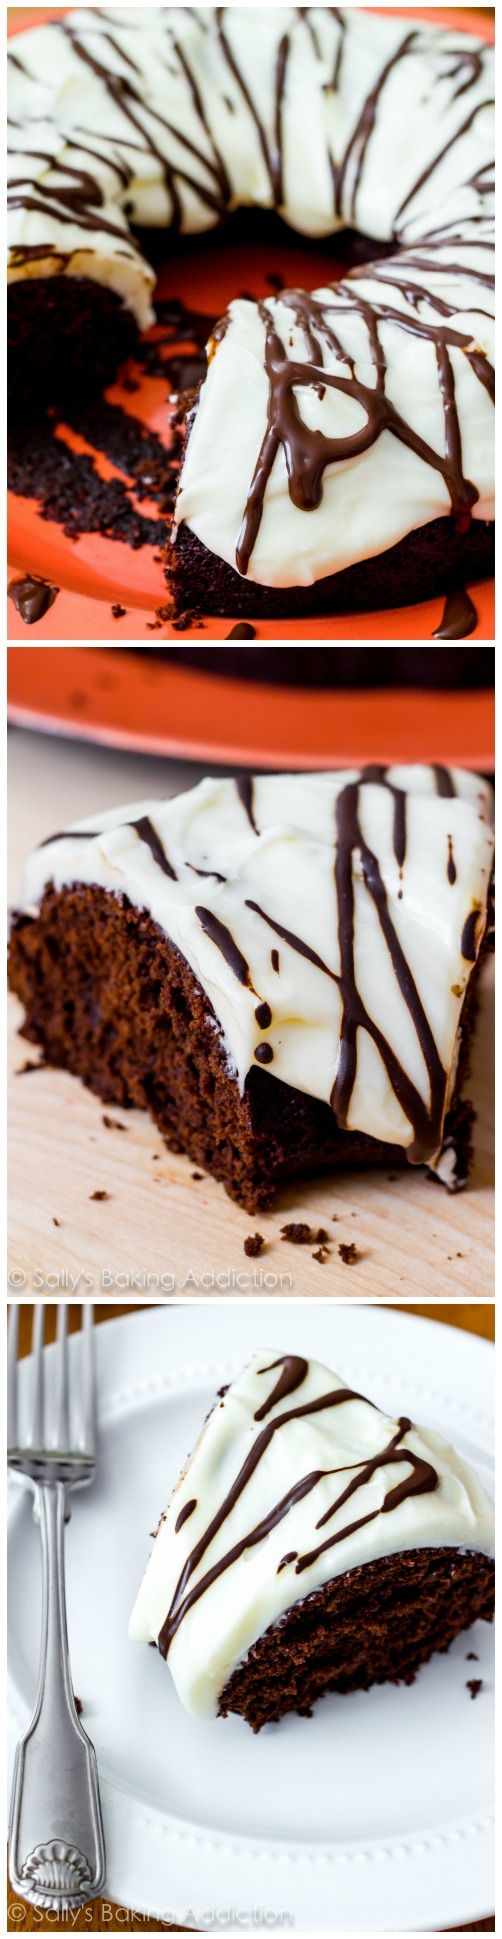 This Chocolate Gingerbread Bundt Cake with cream cheese frosting is full of holiday spices and tons of chocolate flavor!